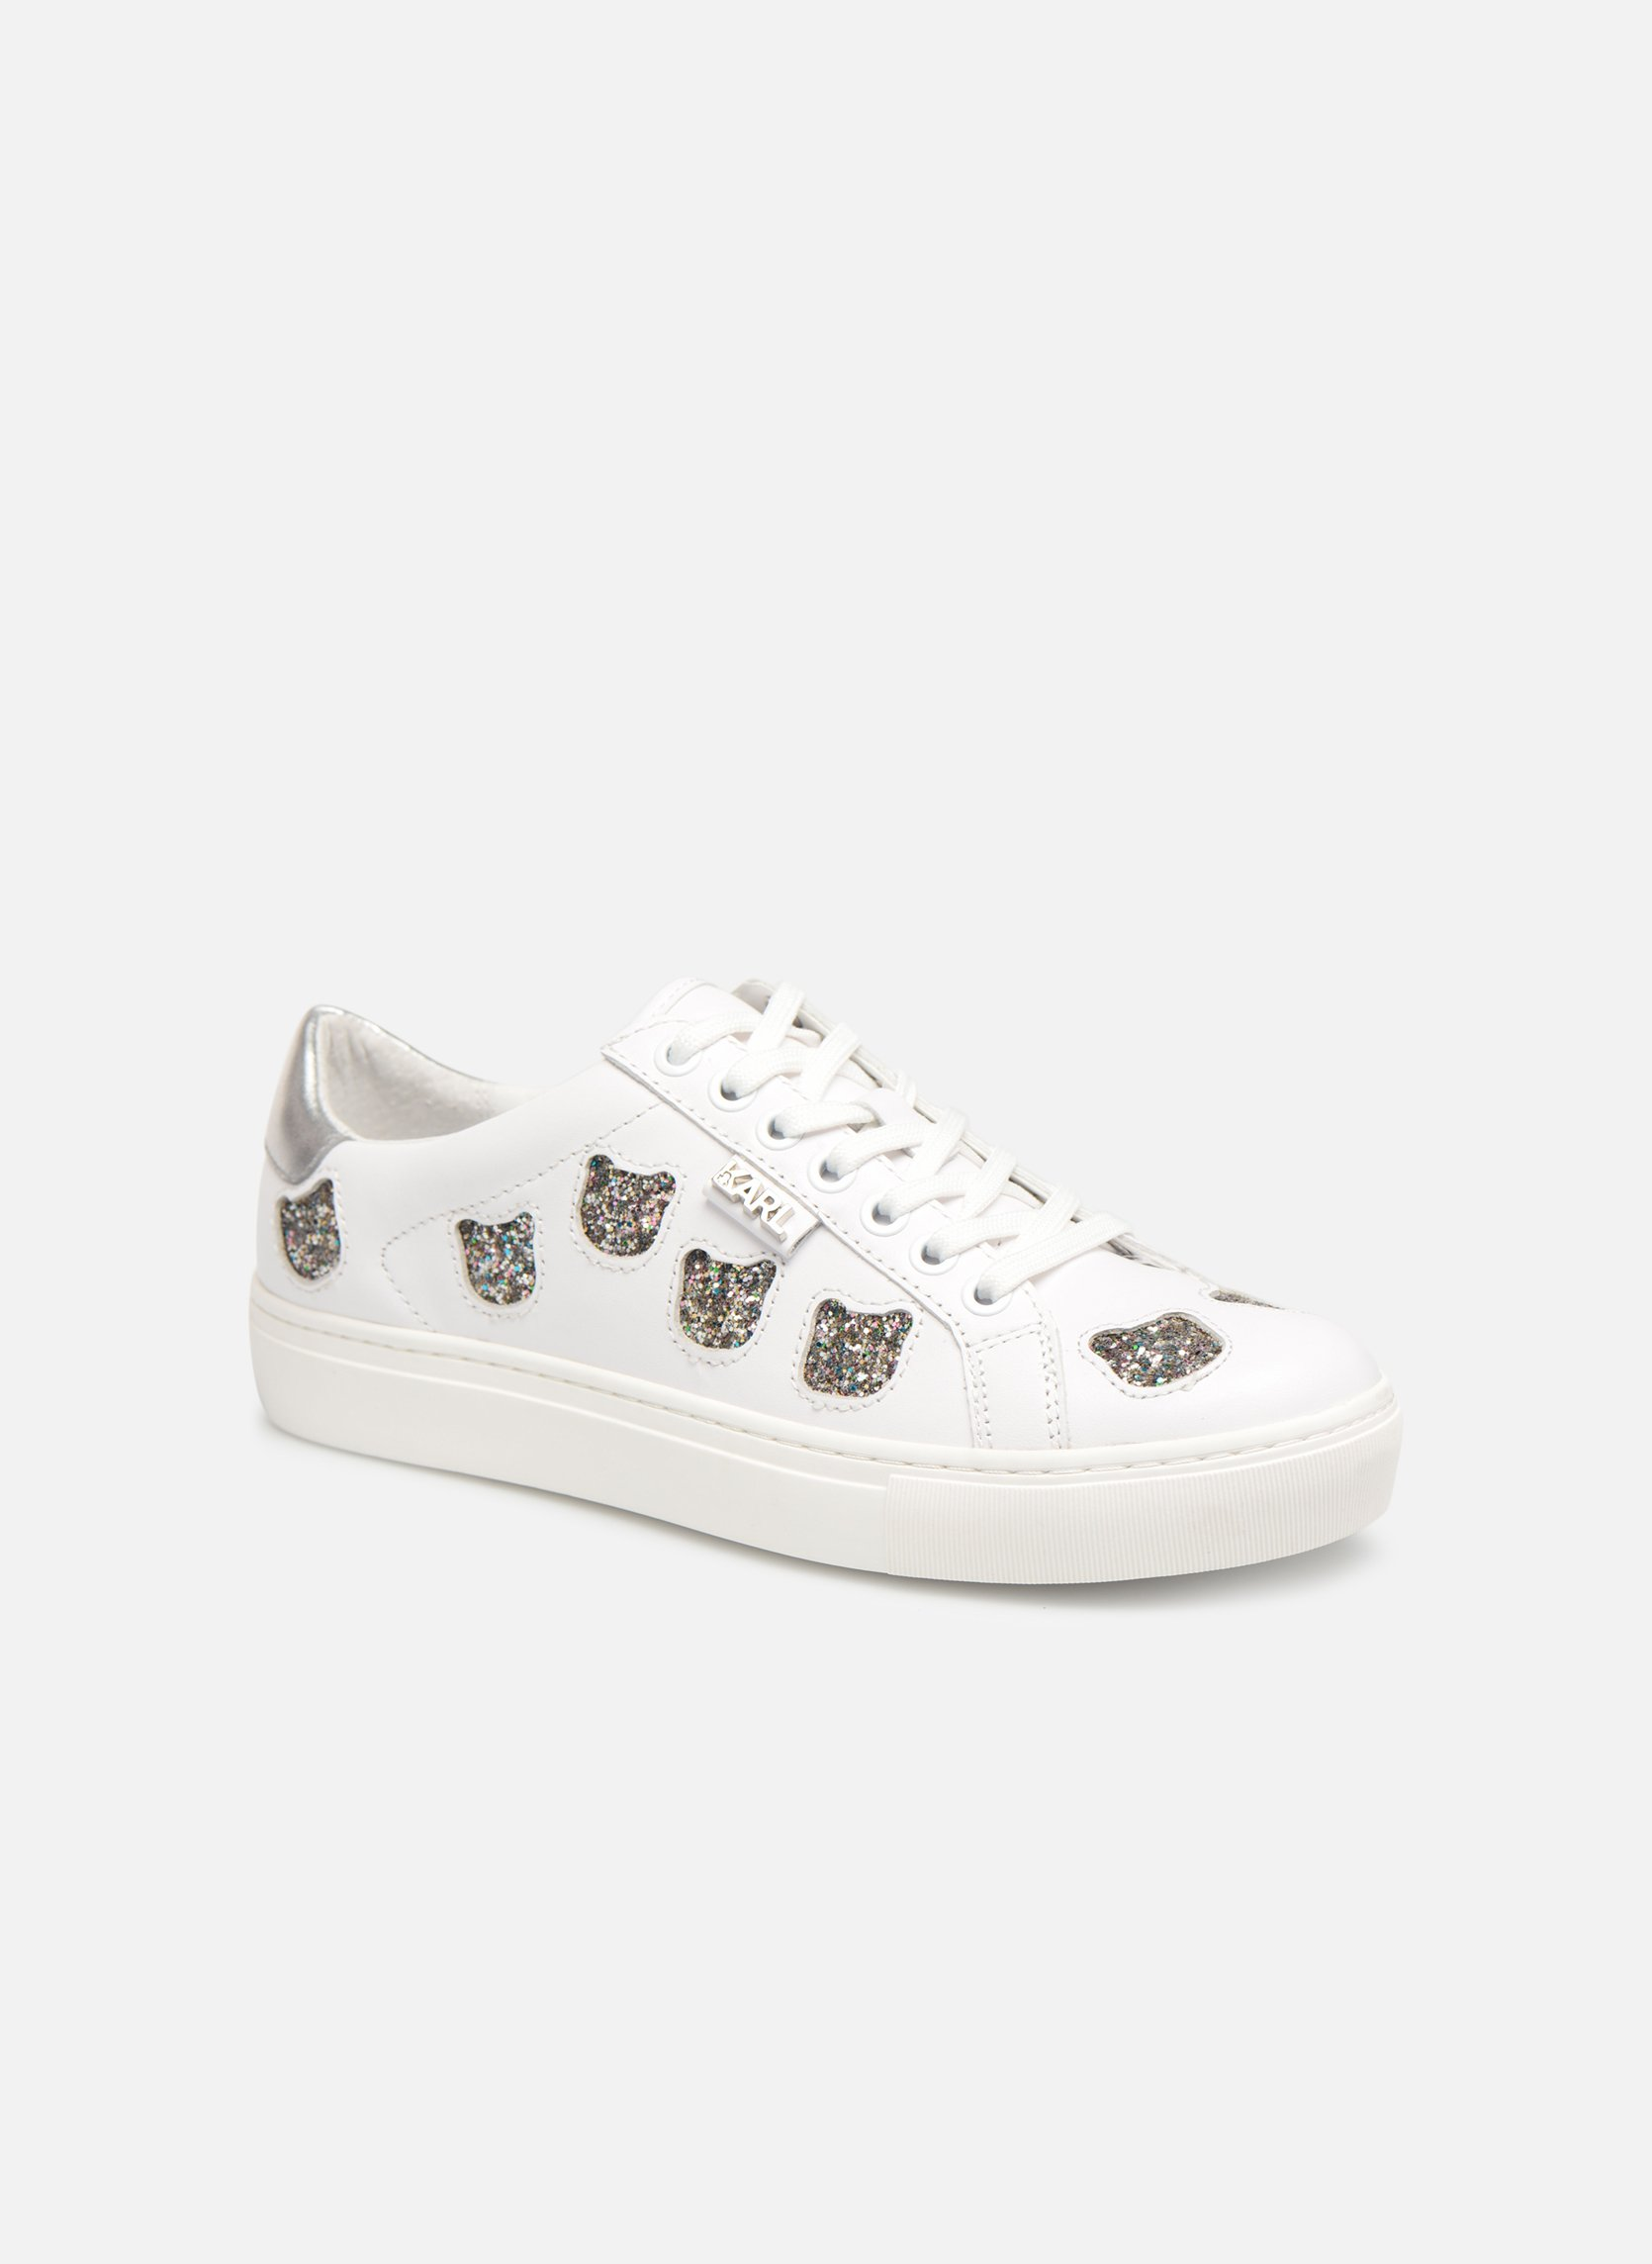 Marques Chaussure femme Karl Lagerfeld femme KUPSOLE Choupette Inlay Lace WHITE / SILVER